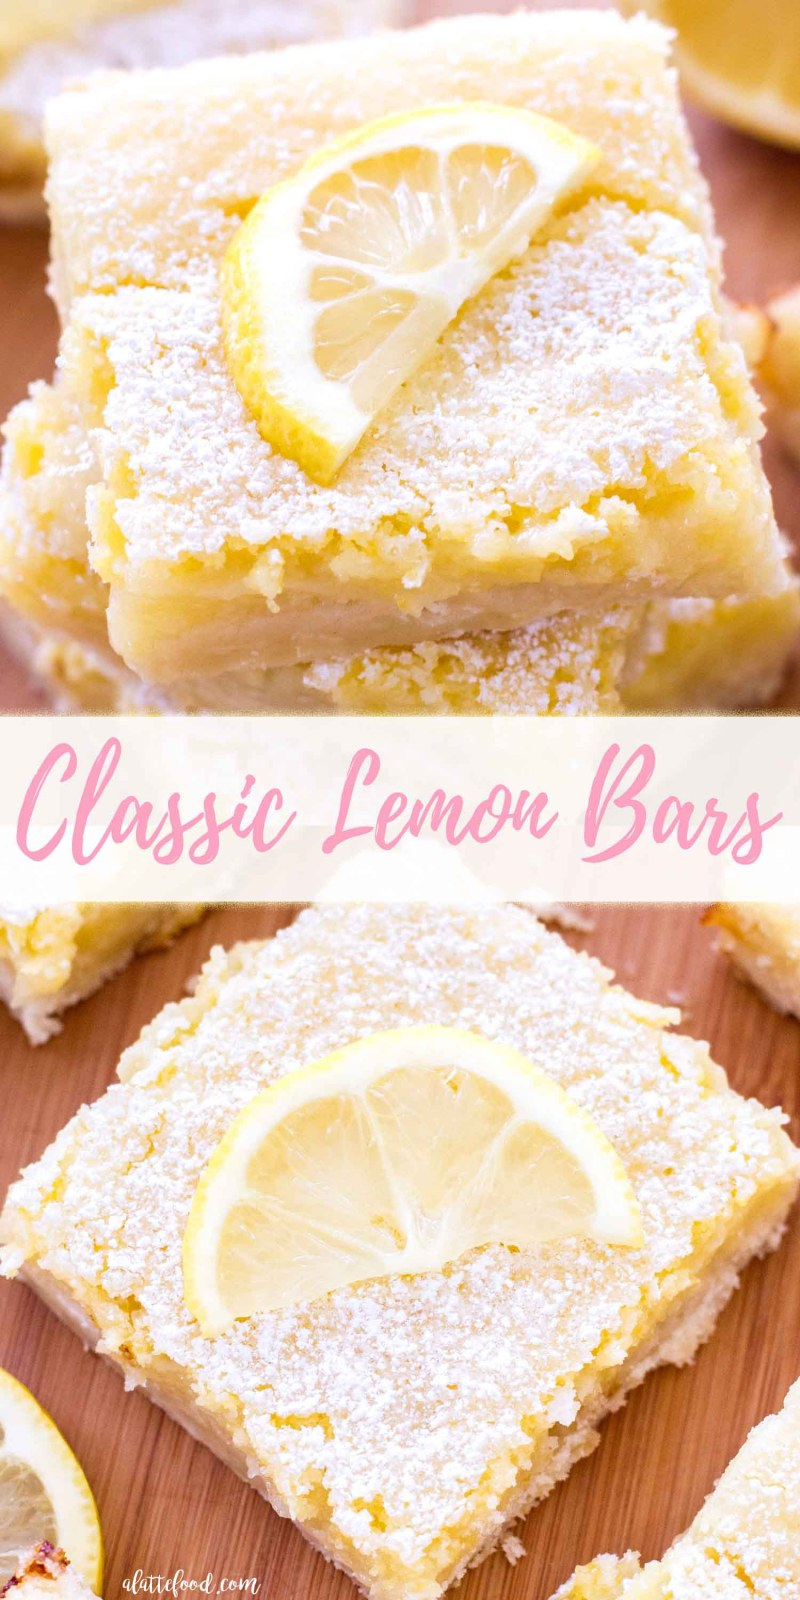 These classic lemon bars have a tangy lemon filling and a sweet shortbread crust! These homemade lemon bars are the perfect Easter dessert, spring dessert, or summer dessert! Or, if you're like me, this lemon bar recipe is perfect for any time of the day! easy lemon bars, the best lemon bar recipe